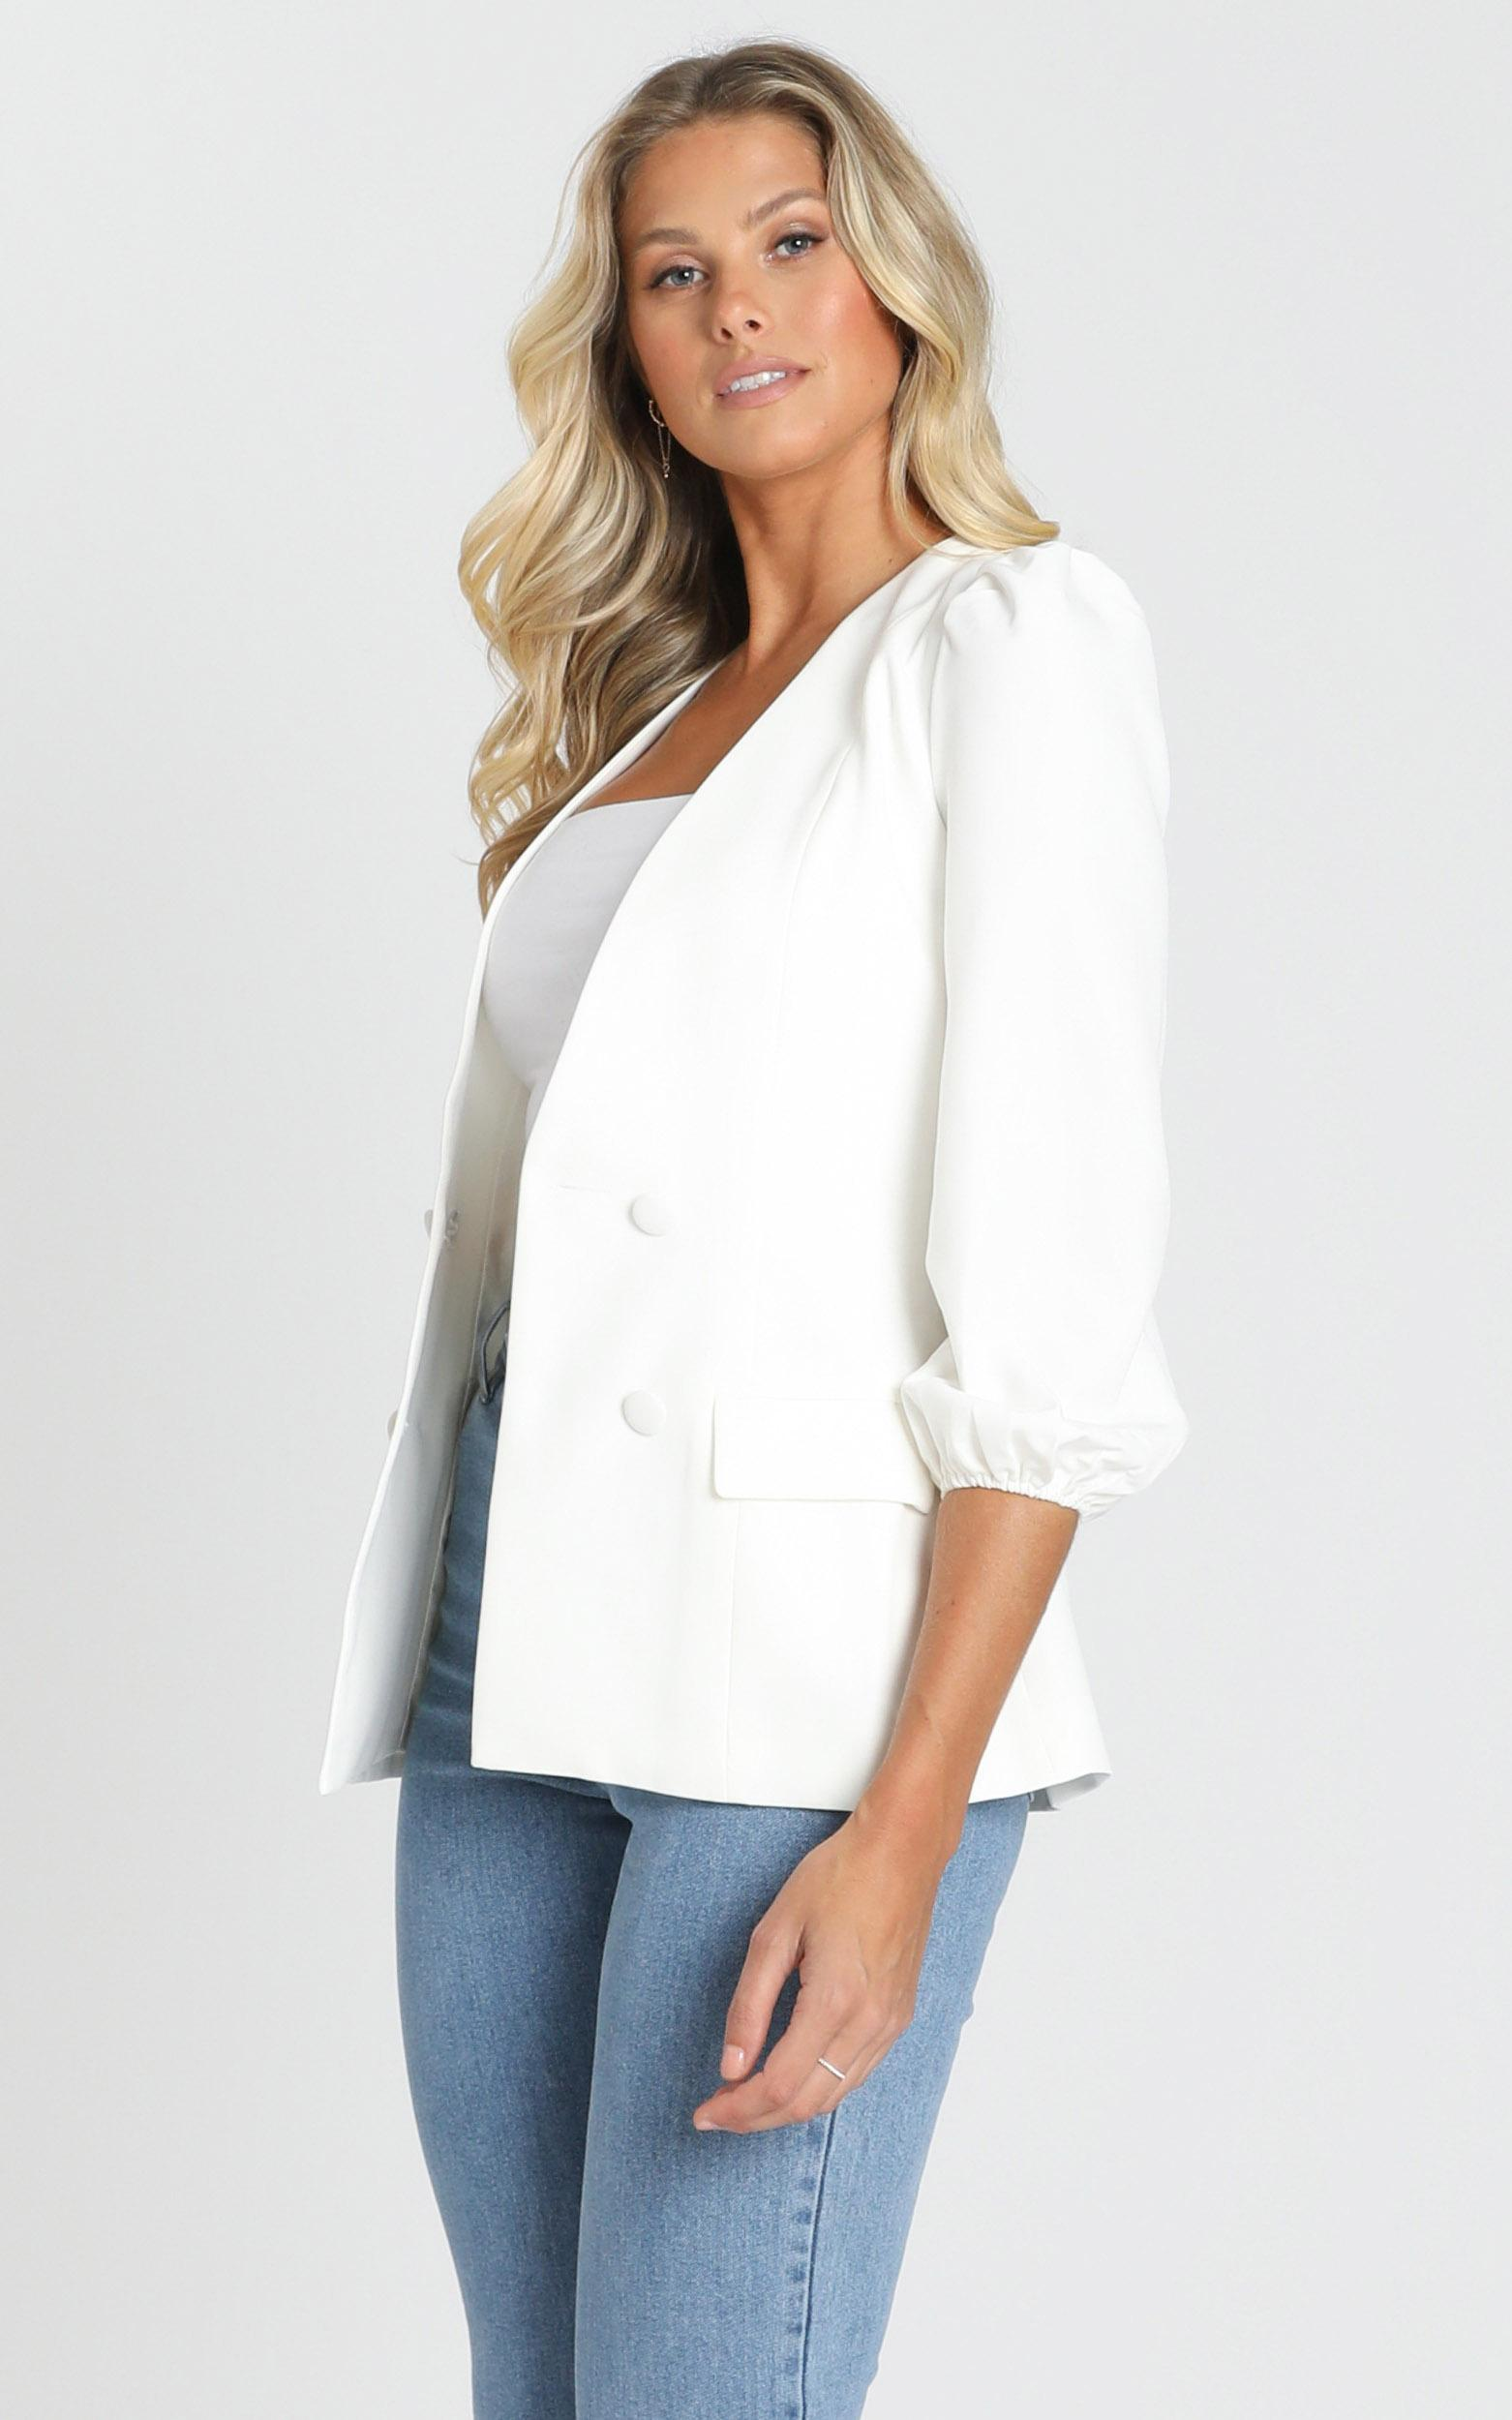 Running Thin Blazer in white - 14 (XL), White, hi-res image number null